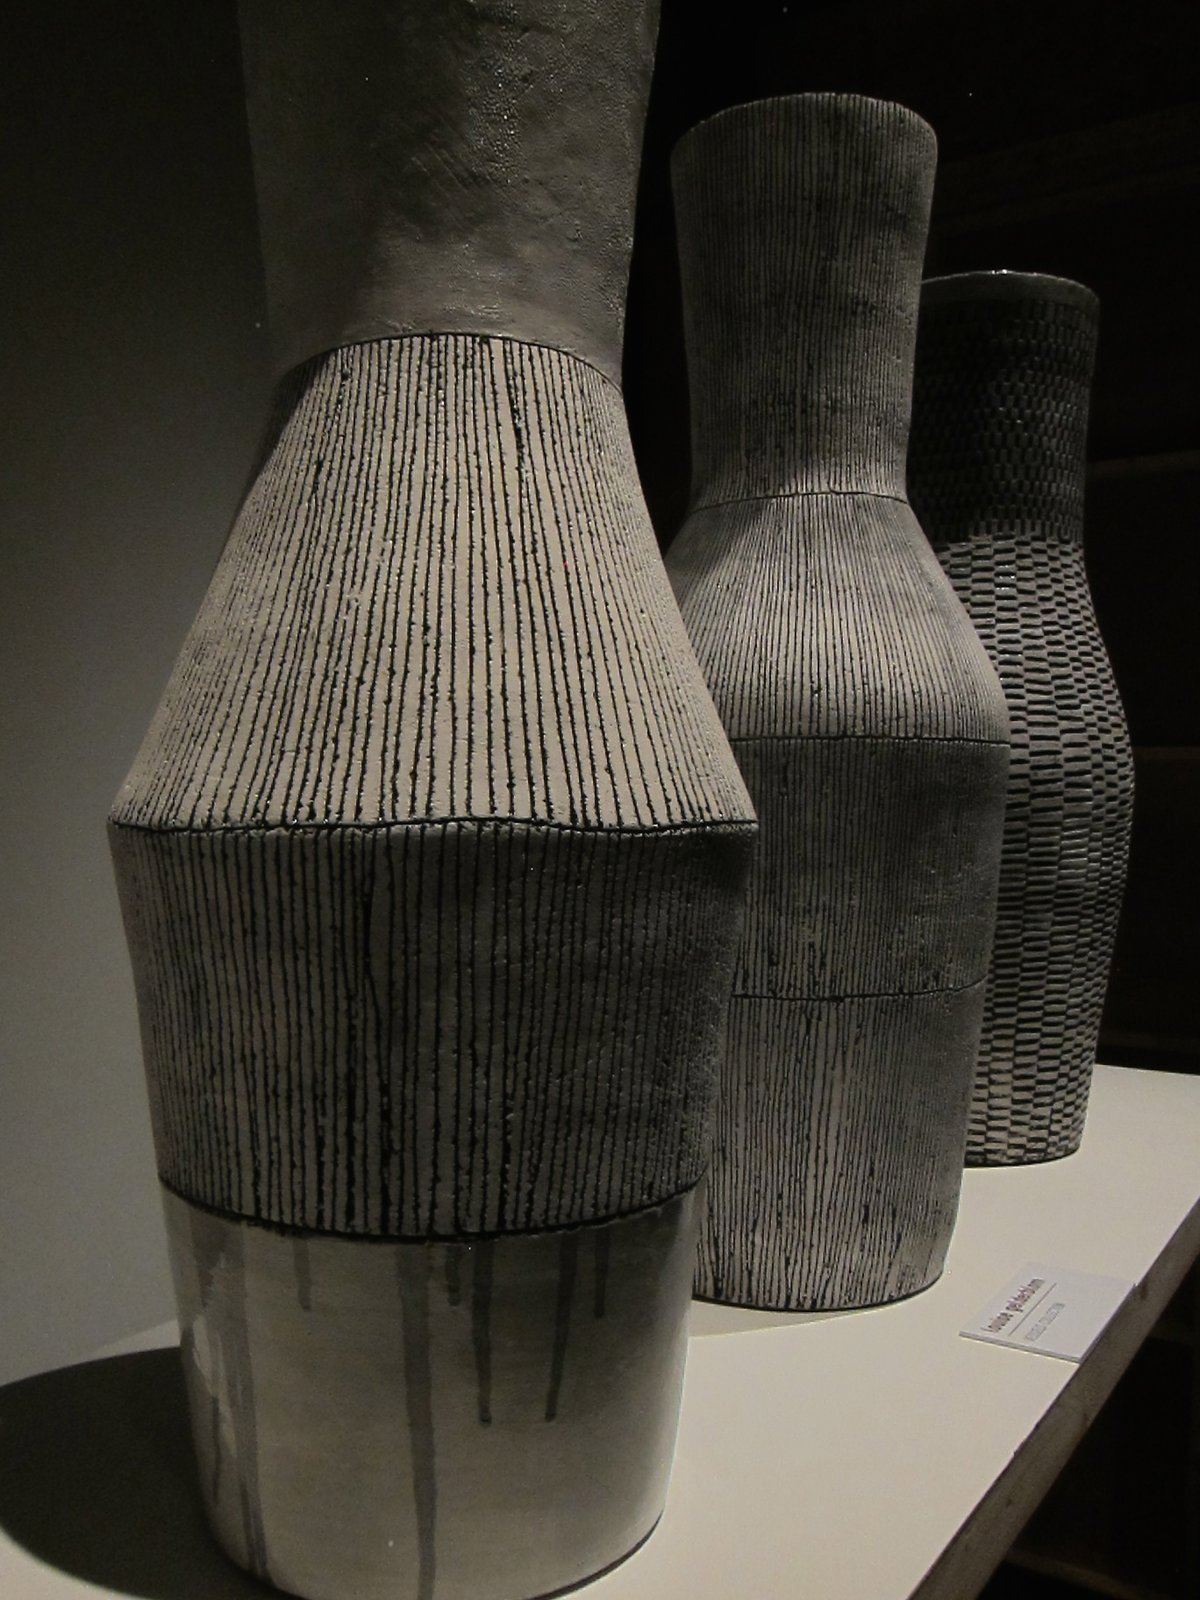 """In another area of the Human Made exhibition, South African ceramics designer Louise Gelderblom presented her latest Vessels collection. She writes from her Cape Town studio: """"The work on show here has been produced by coiling the clay, which means it has been built in layers from the bottom to the top of the piece. I try…to challenge the preconceptions of what clay is capable of and push the limits of what is possible in hand-built ceramics.""""  Highlights from Maison & Objet 2015 by Amanda Dameron"""